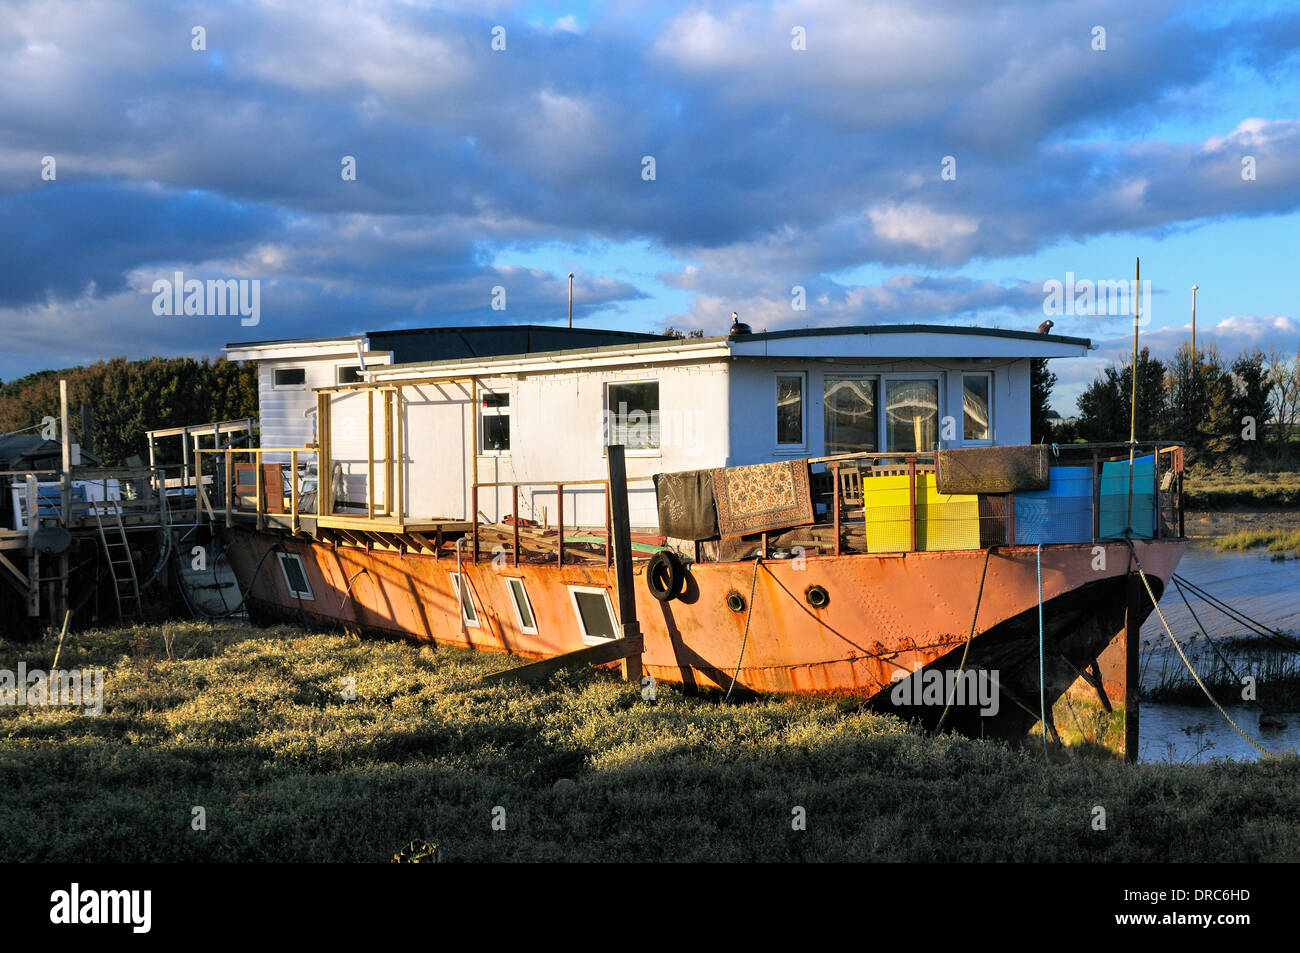 Houseboat on the banks of the river Adur, Shoreham-by-Sea, West Sussex, England, UK Stock Photo